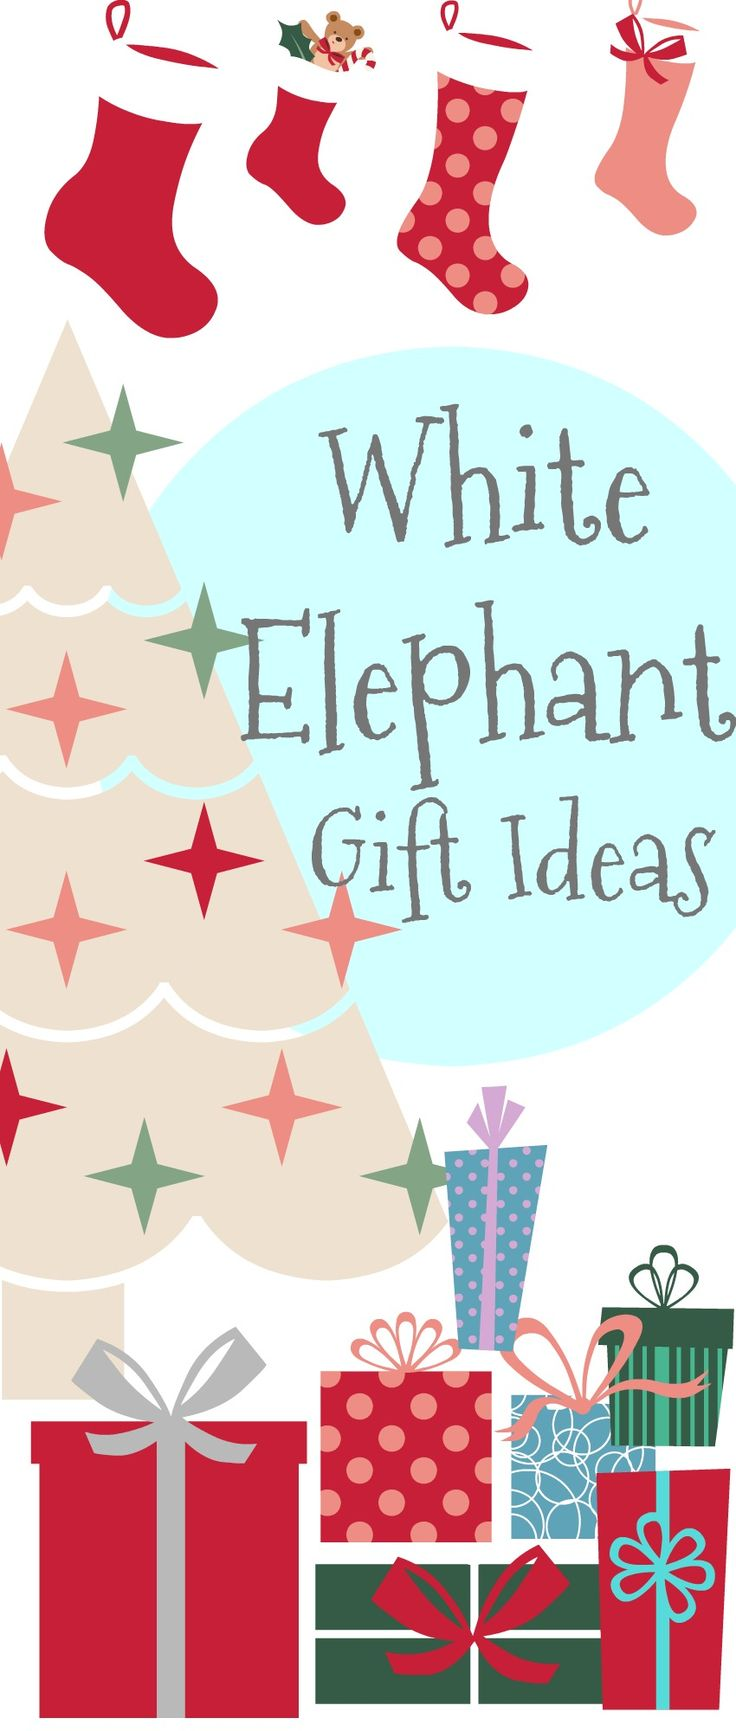 Need White Elephant Gift Ideas for the upcoming holidays? Look no further than this exhaustive list of White Elephant Gifts.